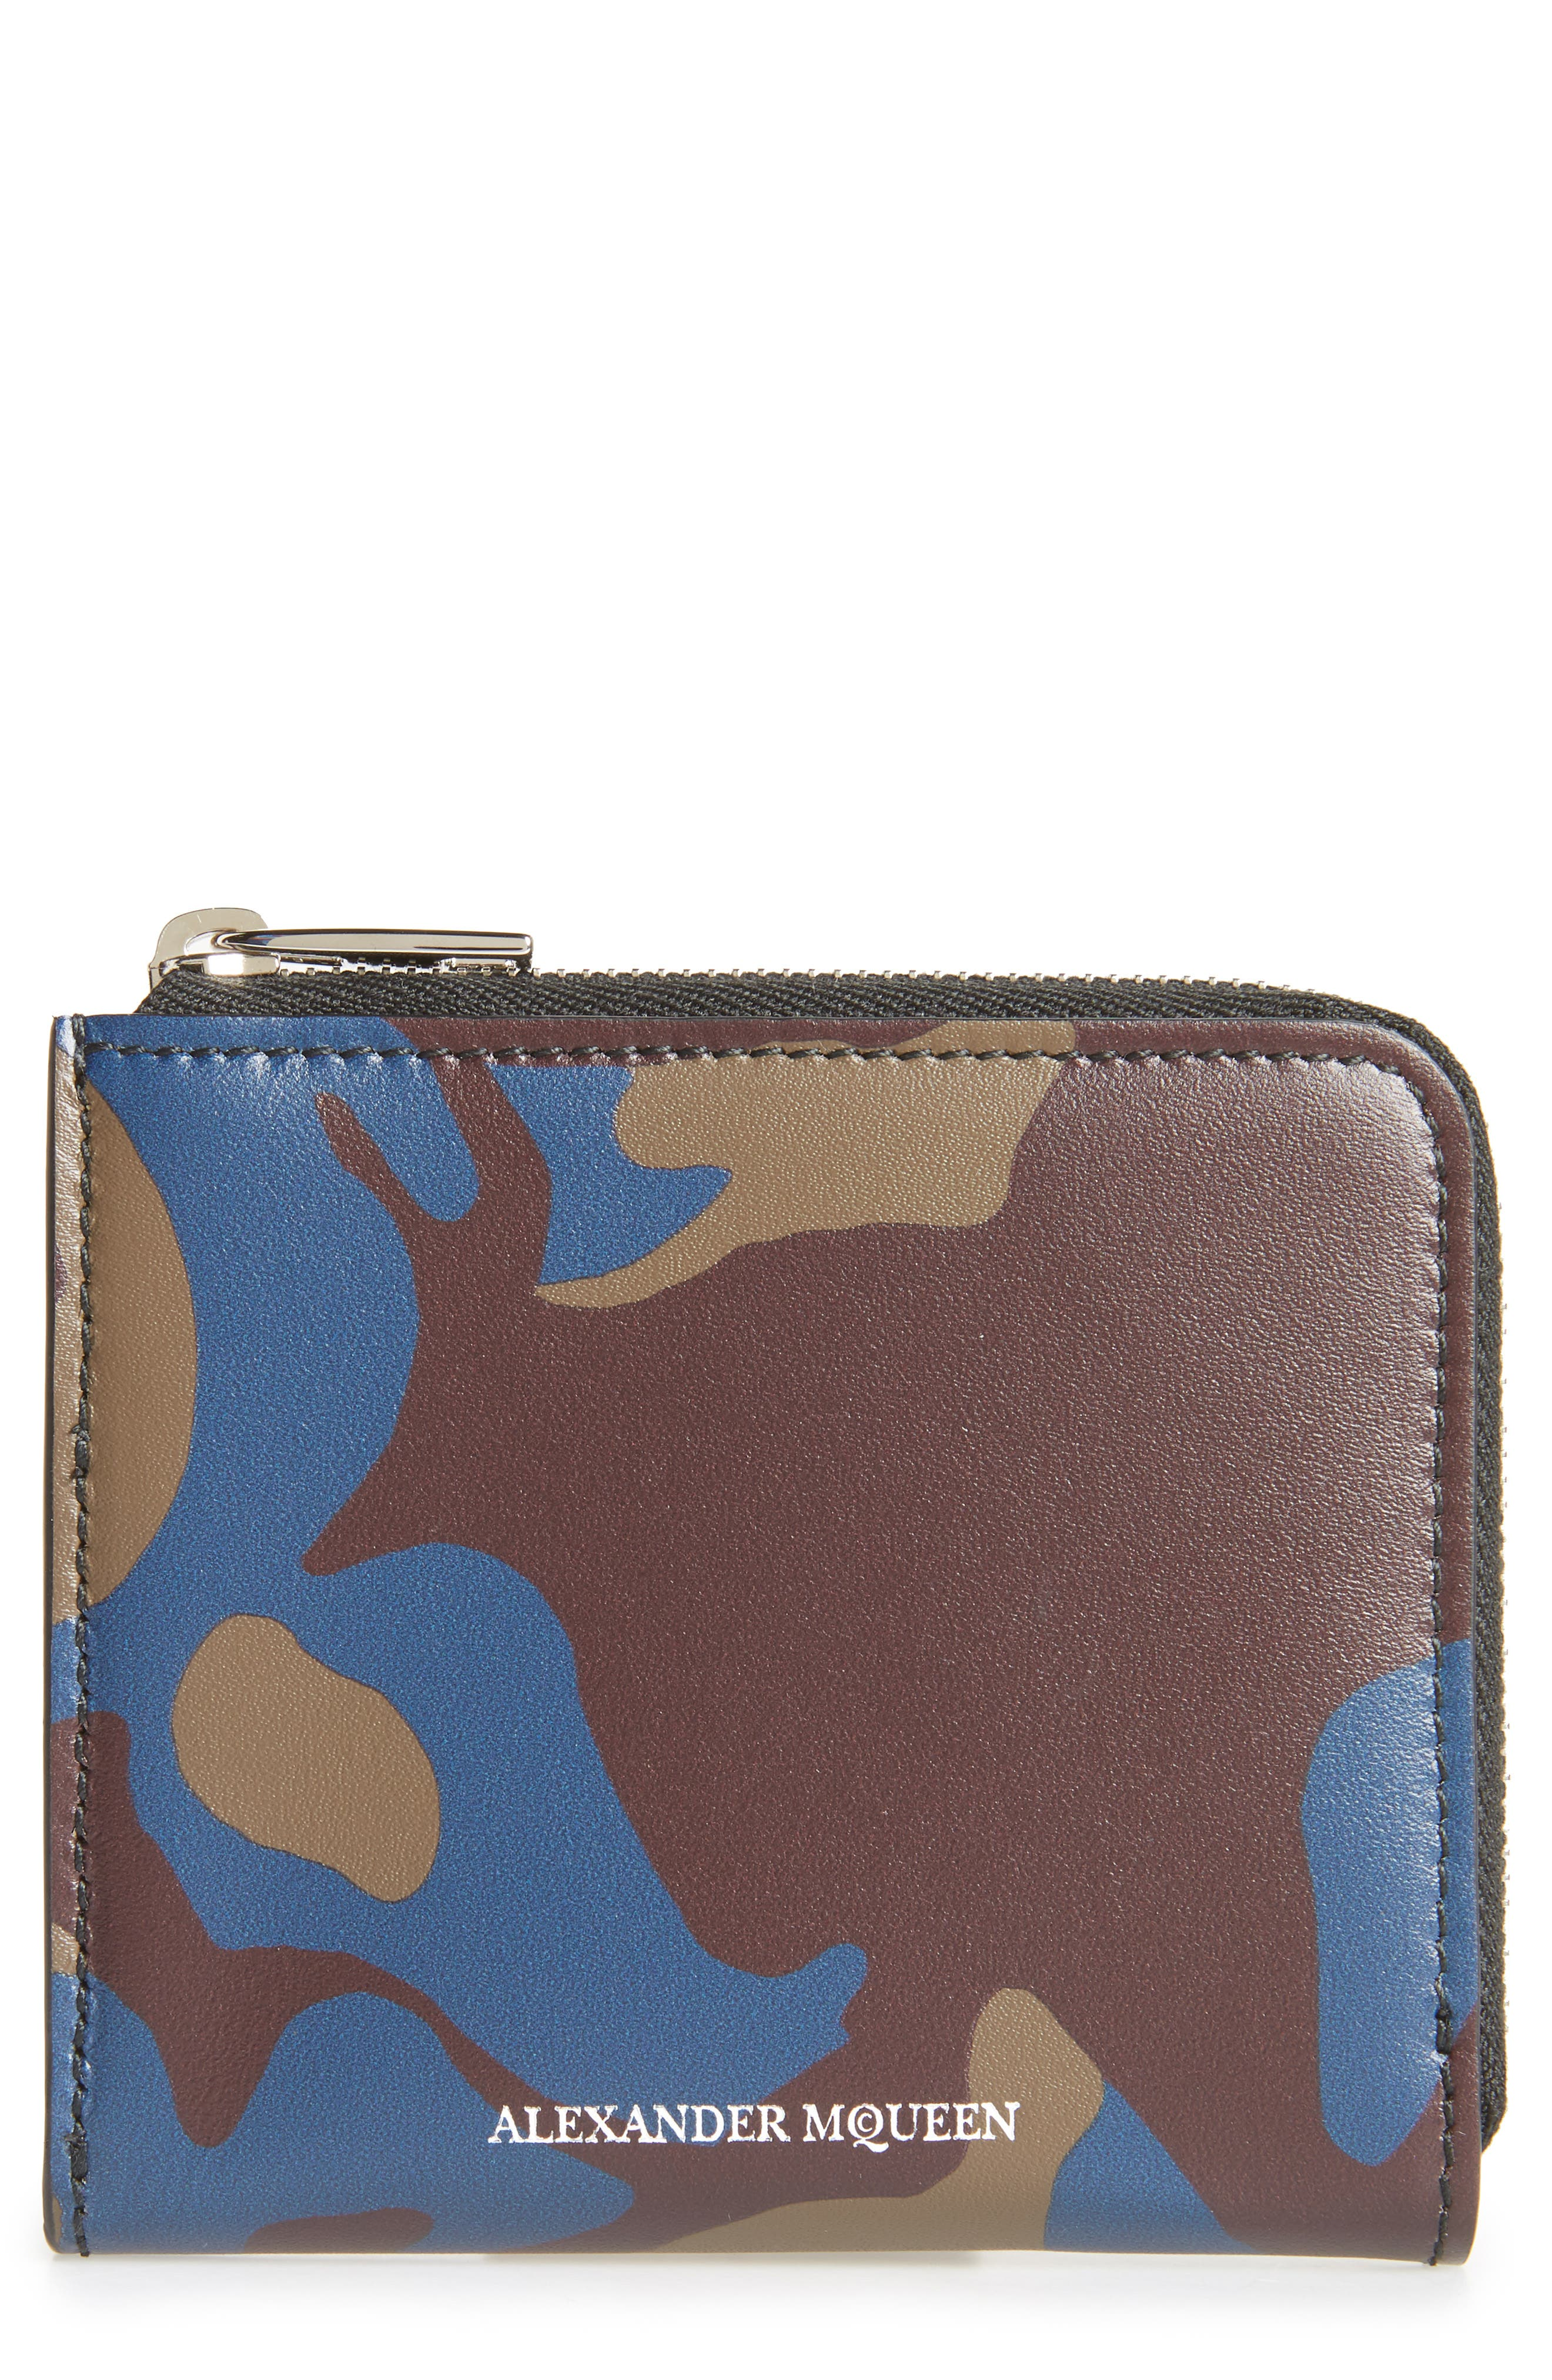 Leather Zip Coin Purse,                         Main,                         color, 941